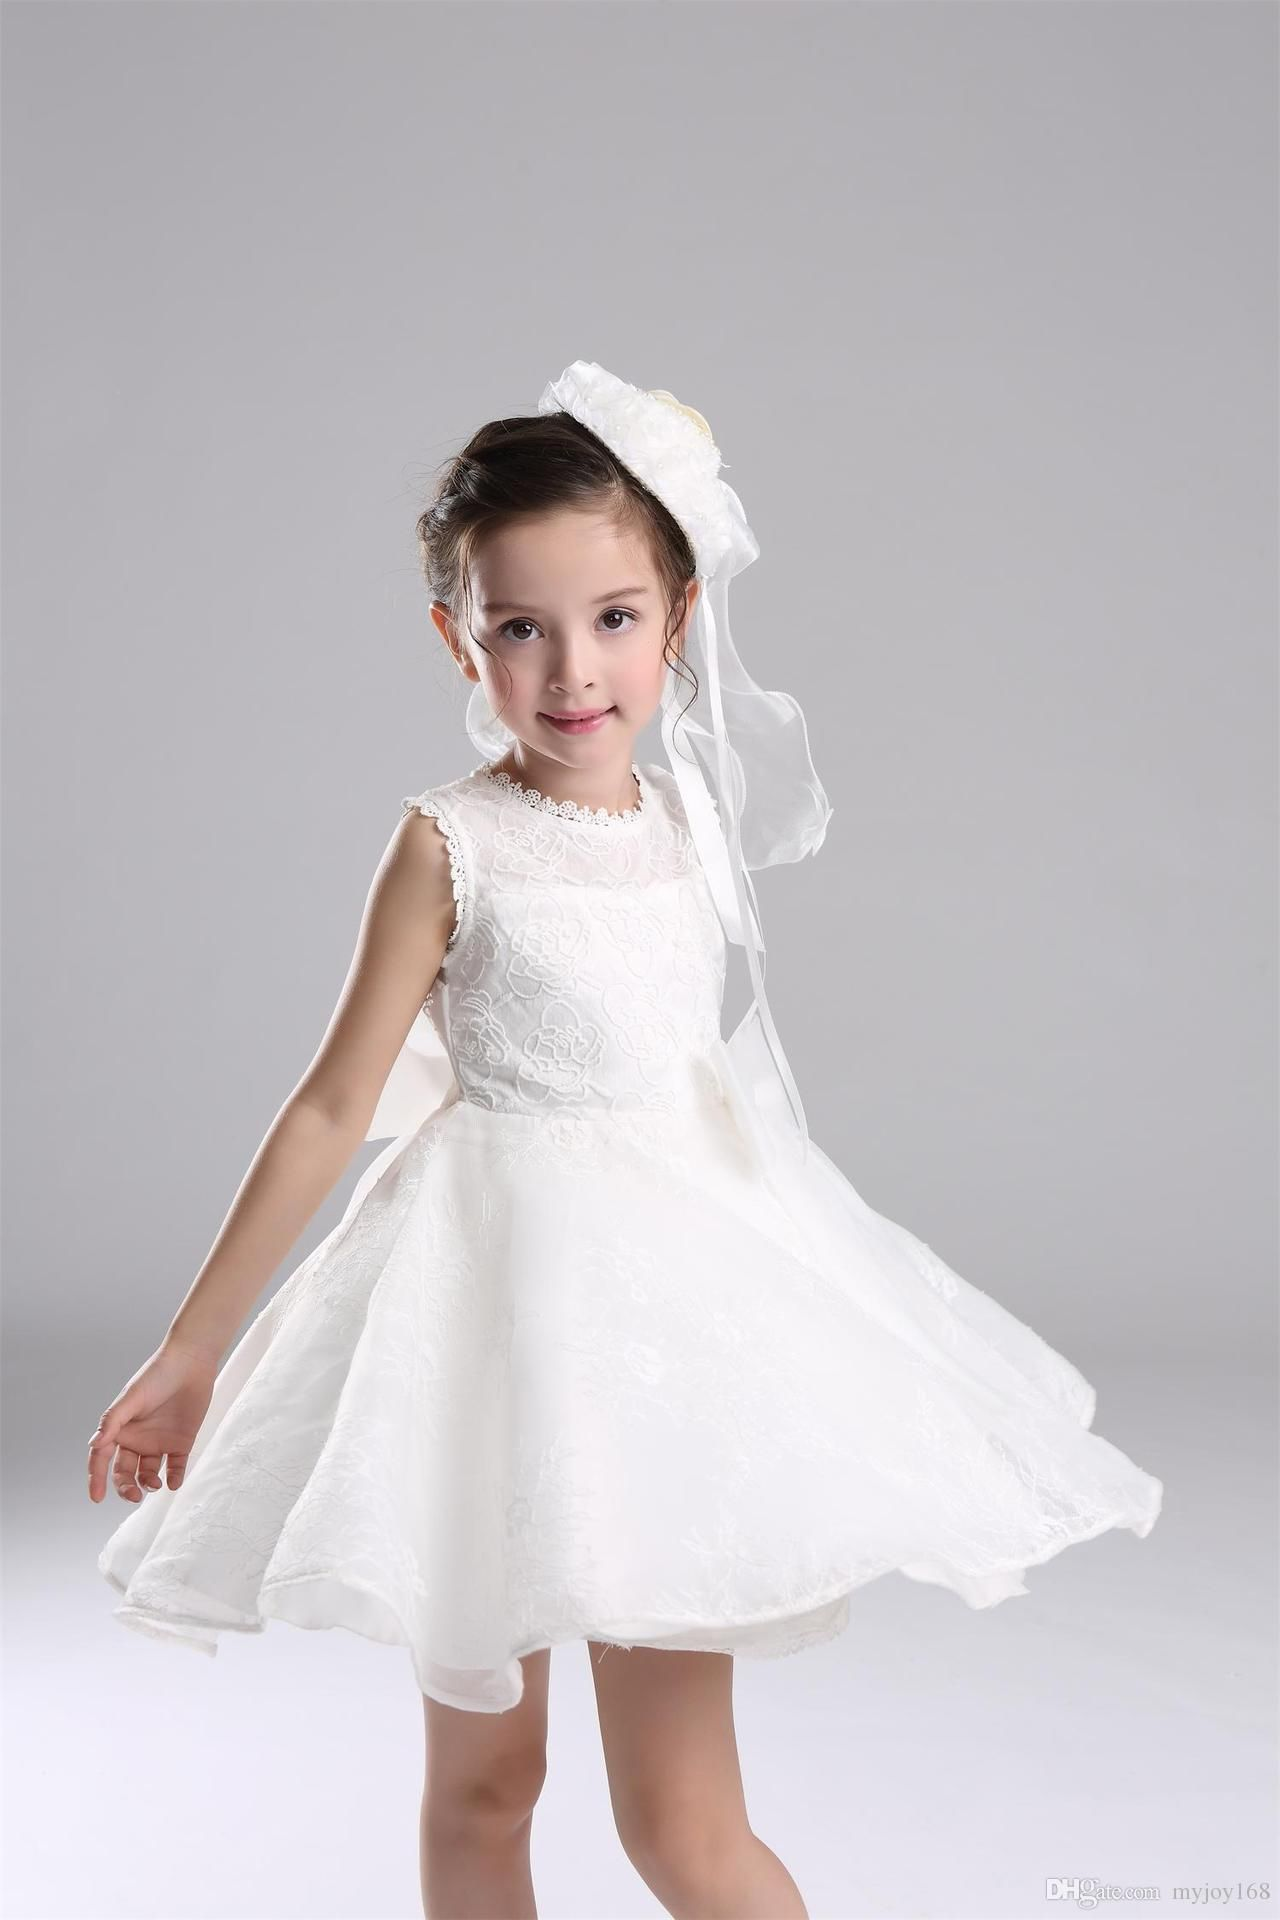 Baby Girl Dresses for A Wedding - Dresses for Wedding Reception ...